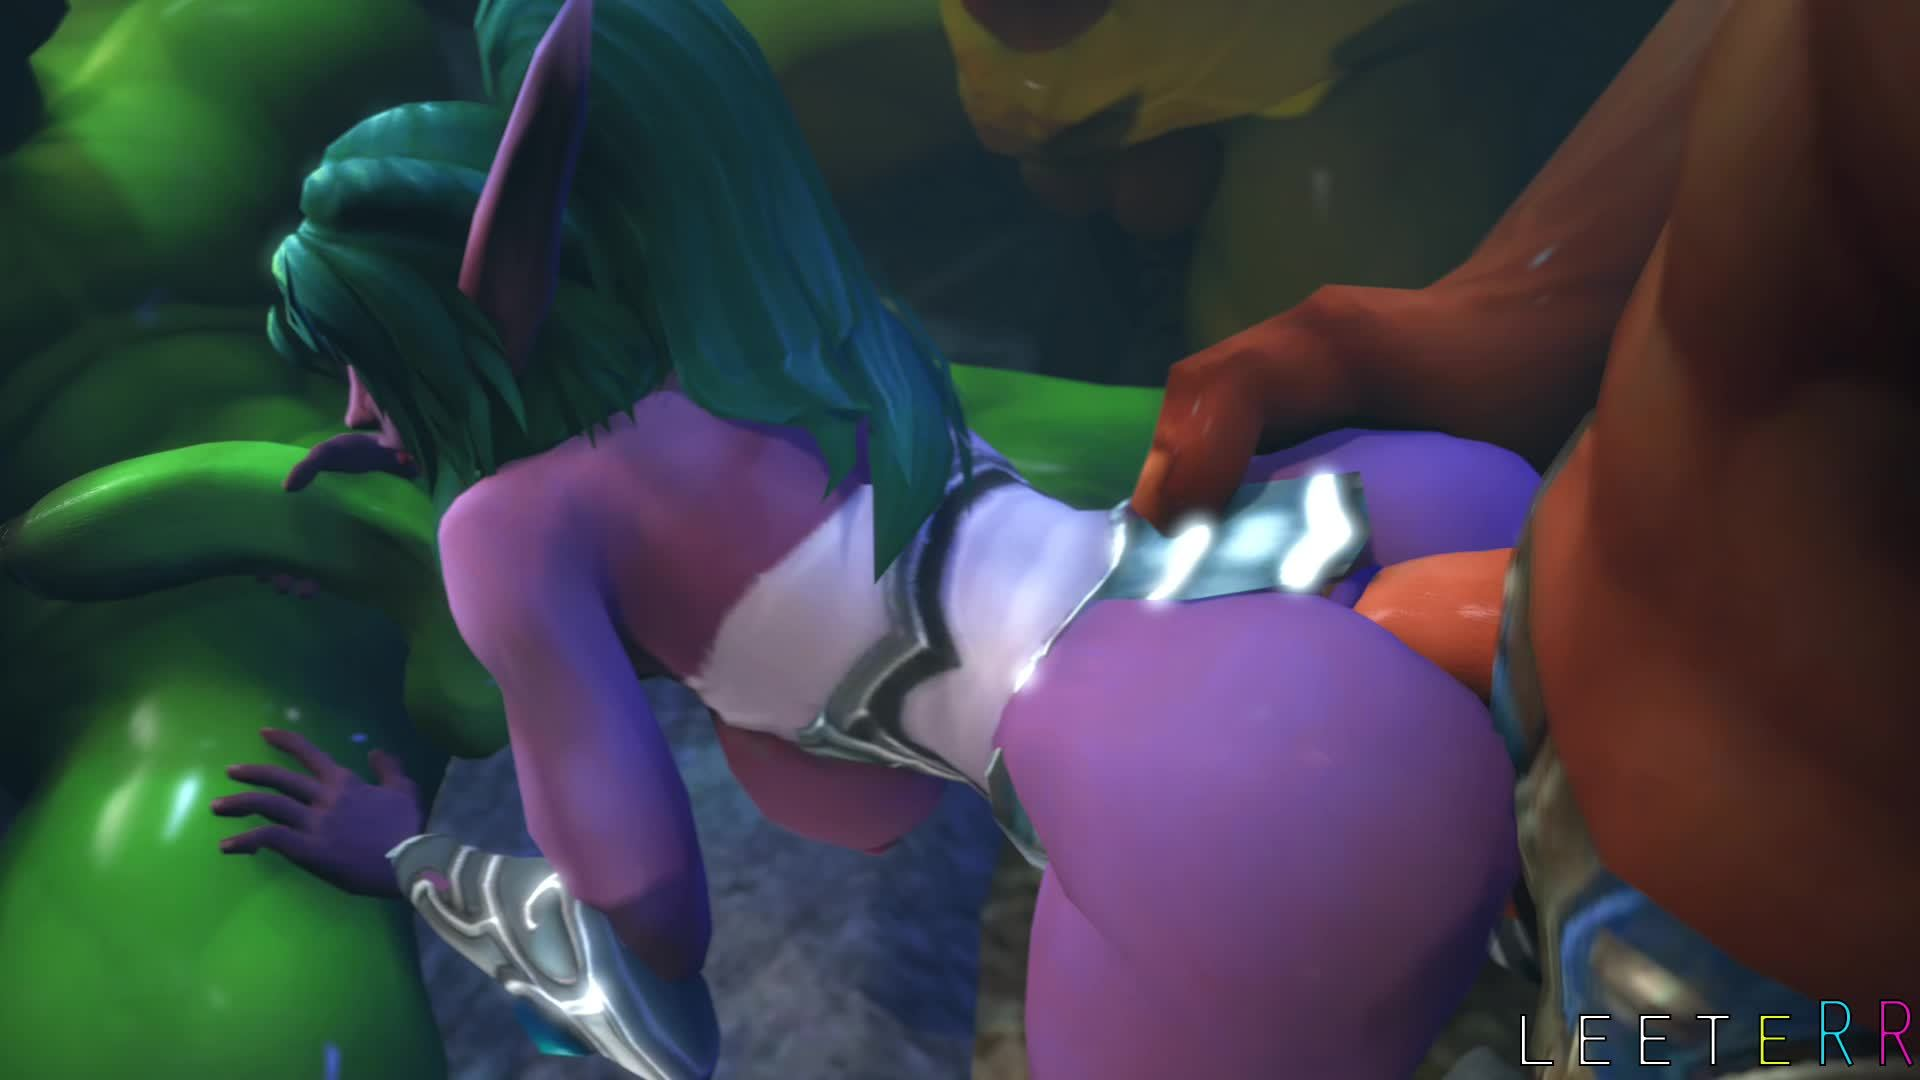 Warcraft 3 porn 3d cartoon photo